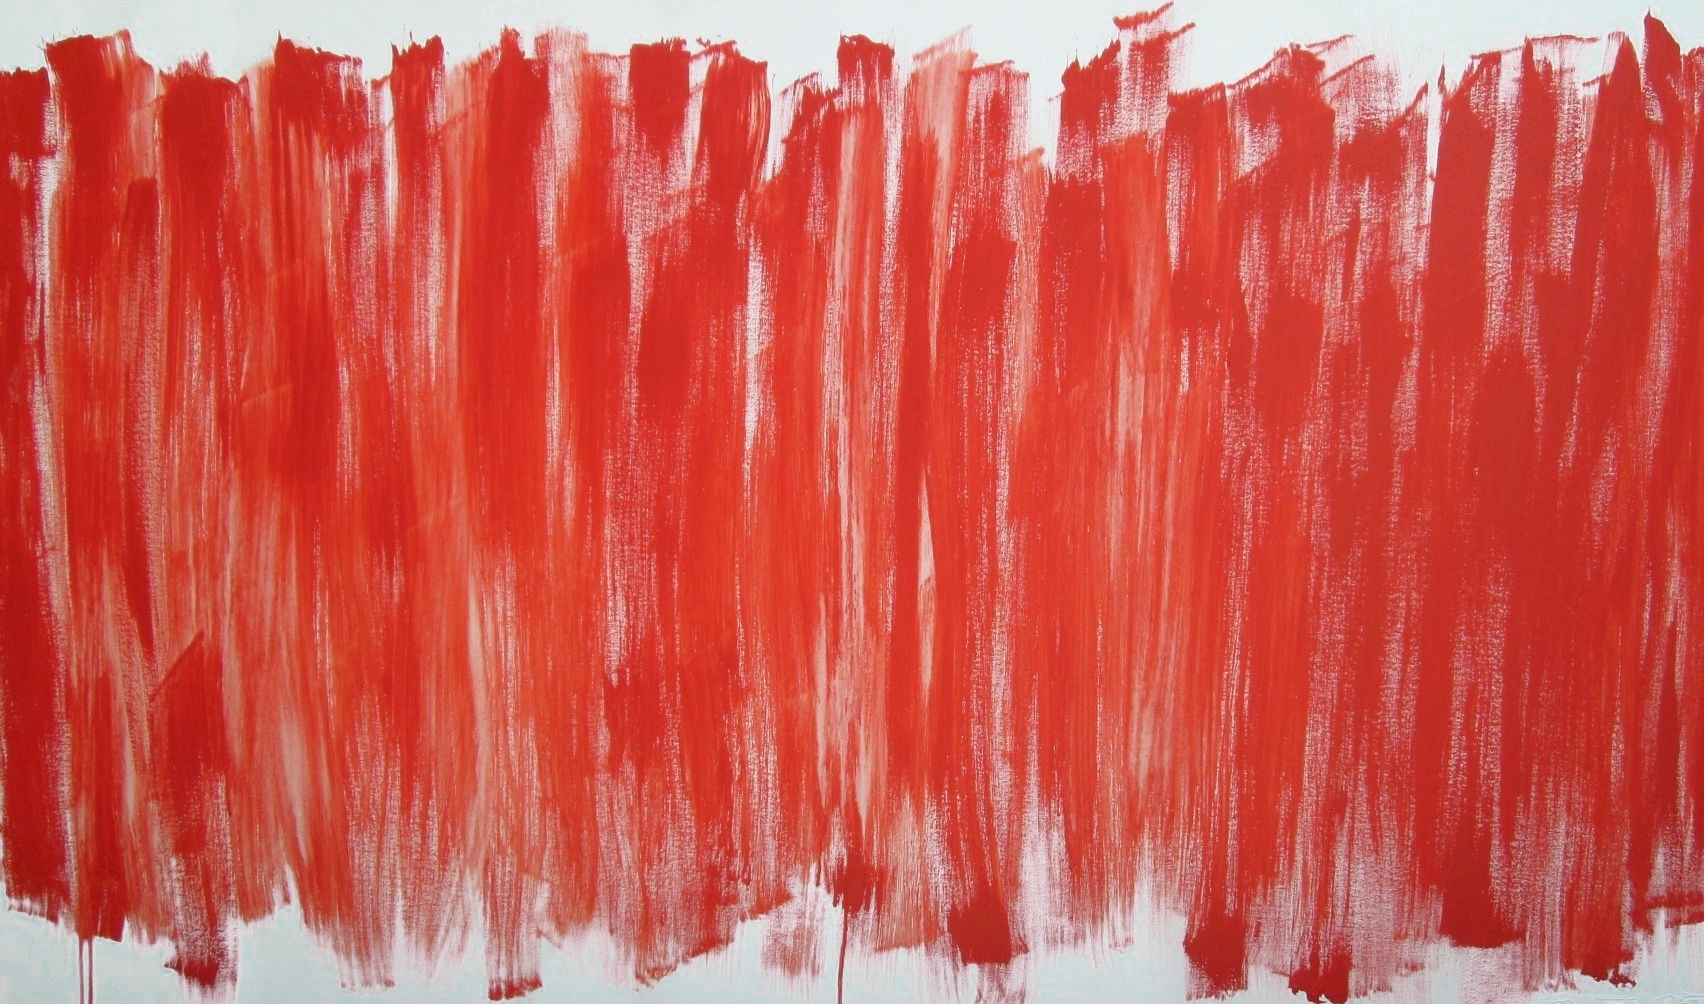 Reds , 72x30, acrylic on stretched canvas, gold painted edges, $800.